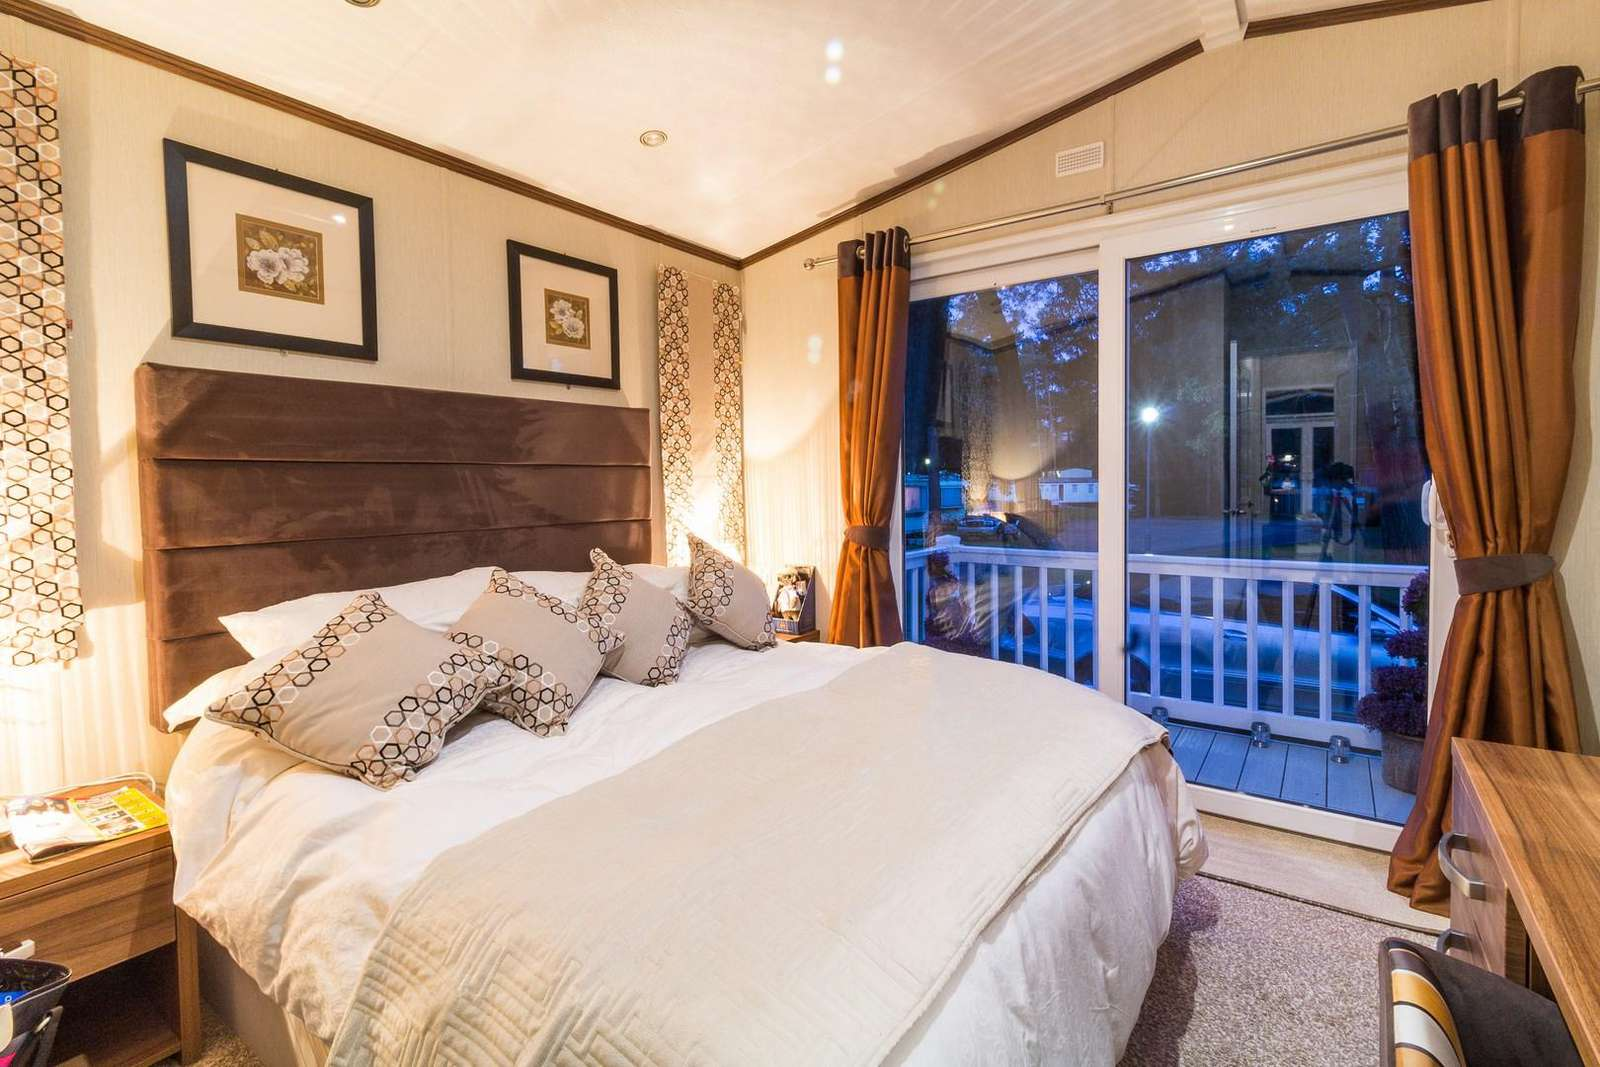 Come and stay in this luxury king size bed at the Haven Wild Duck Holiday Park.